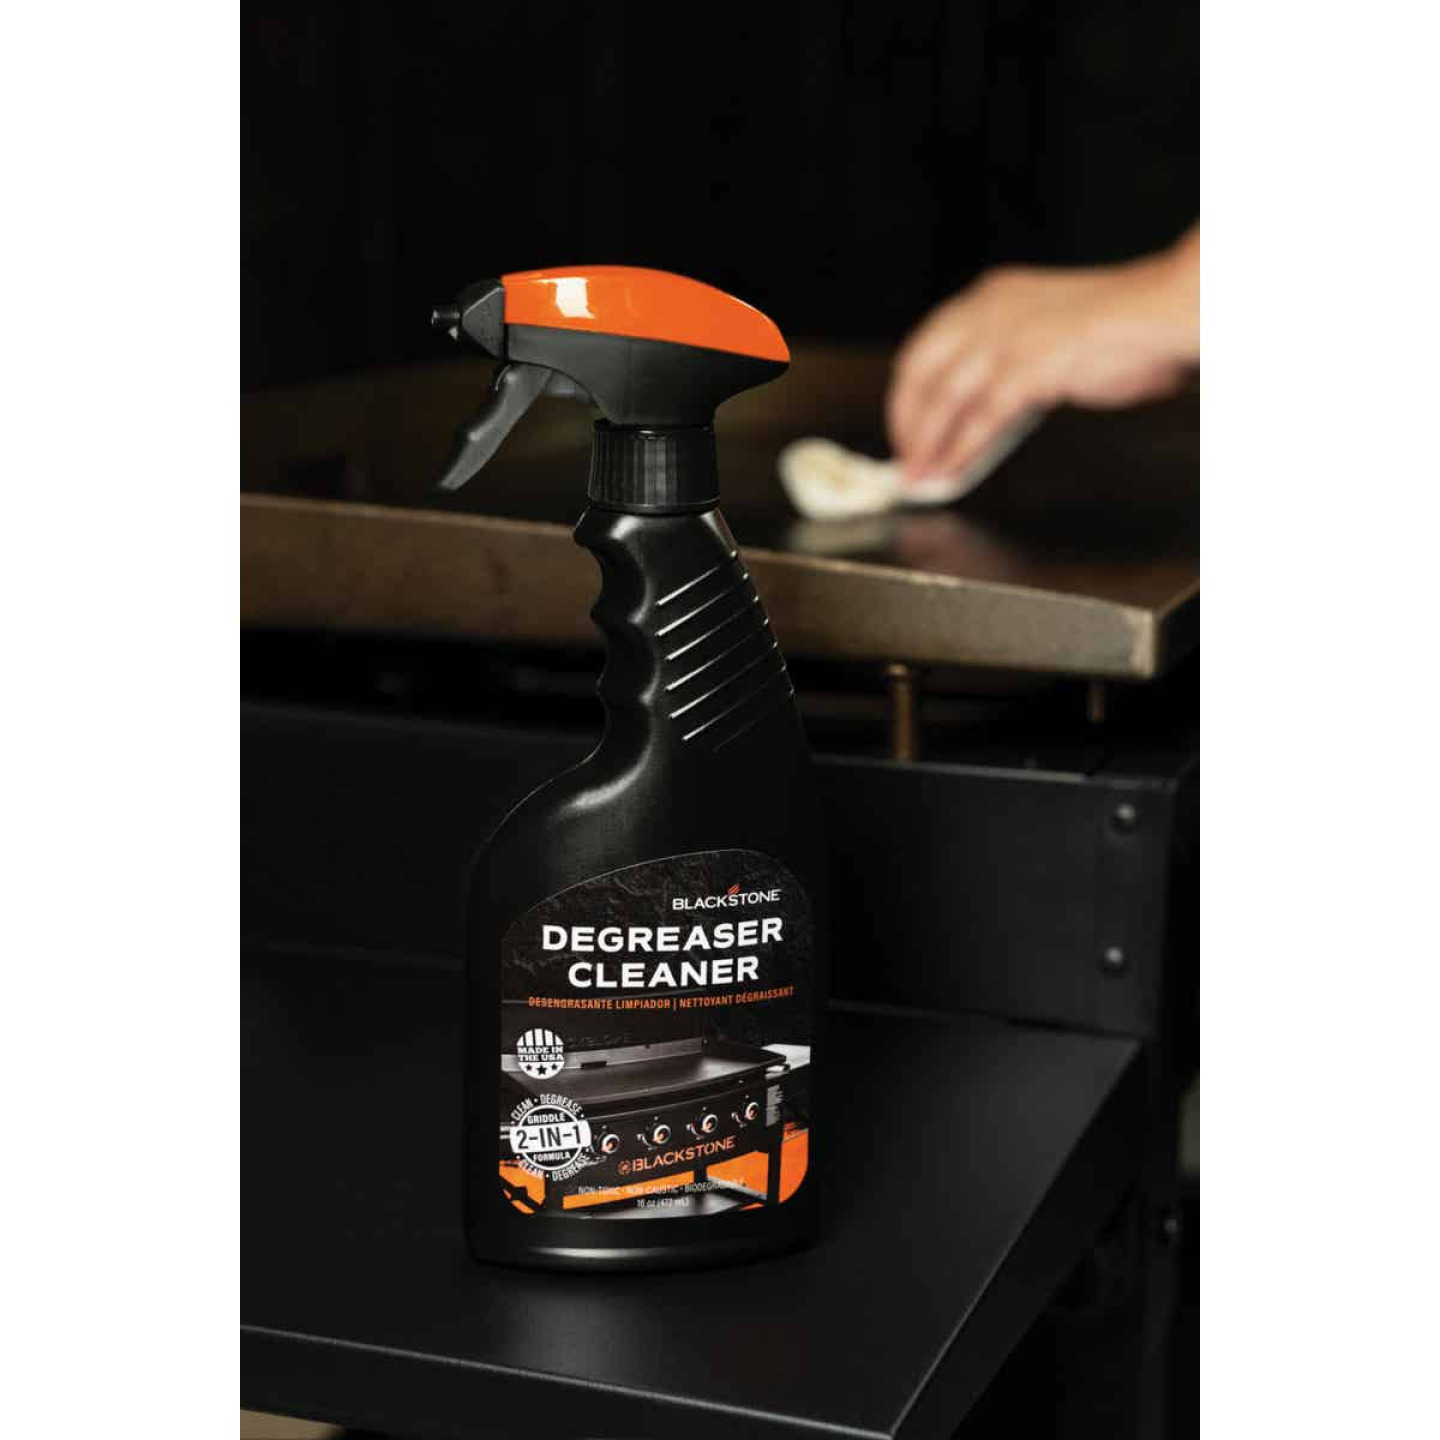 Blackstone 8 Oz. Trigger Spray Griddle Cleaner & Degreaser Image 2